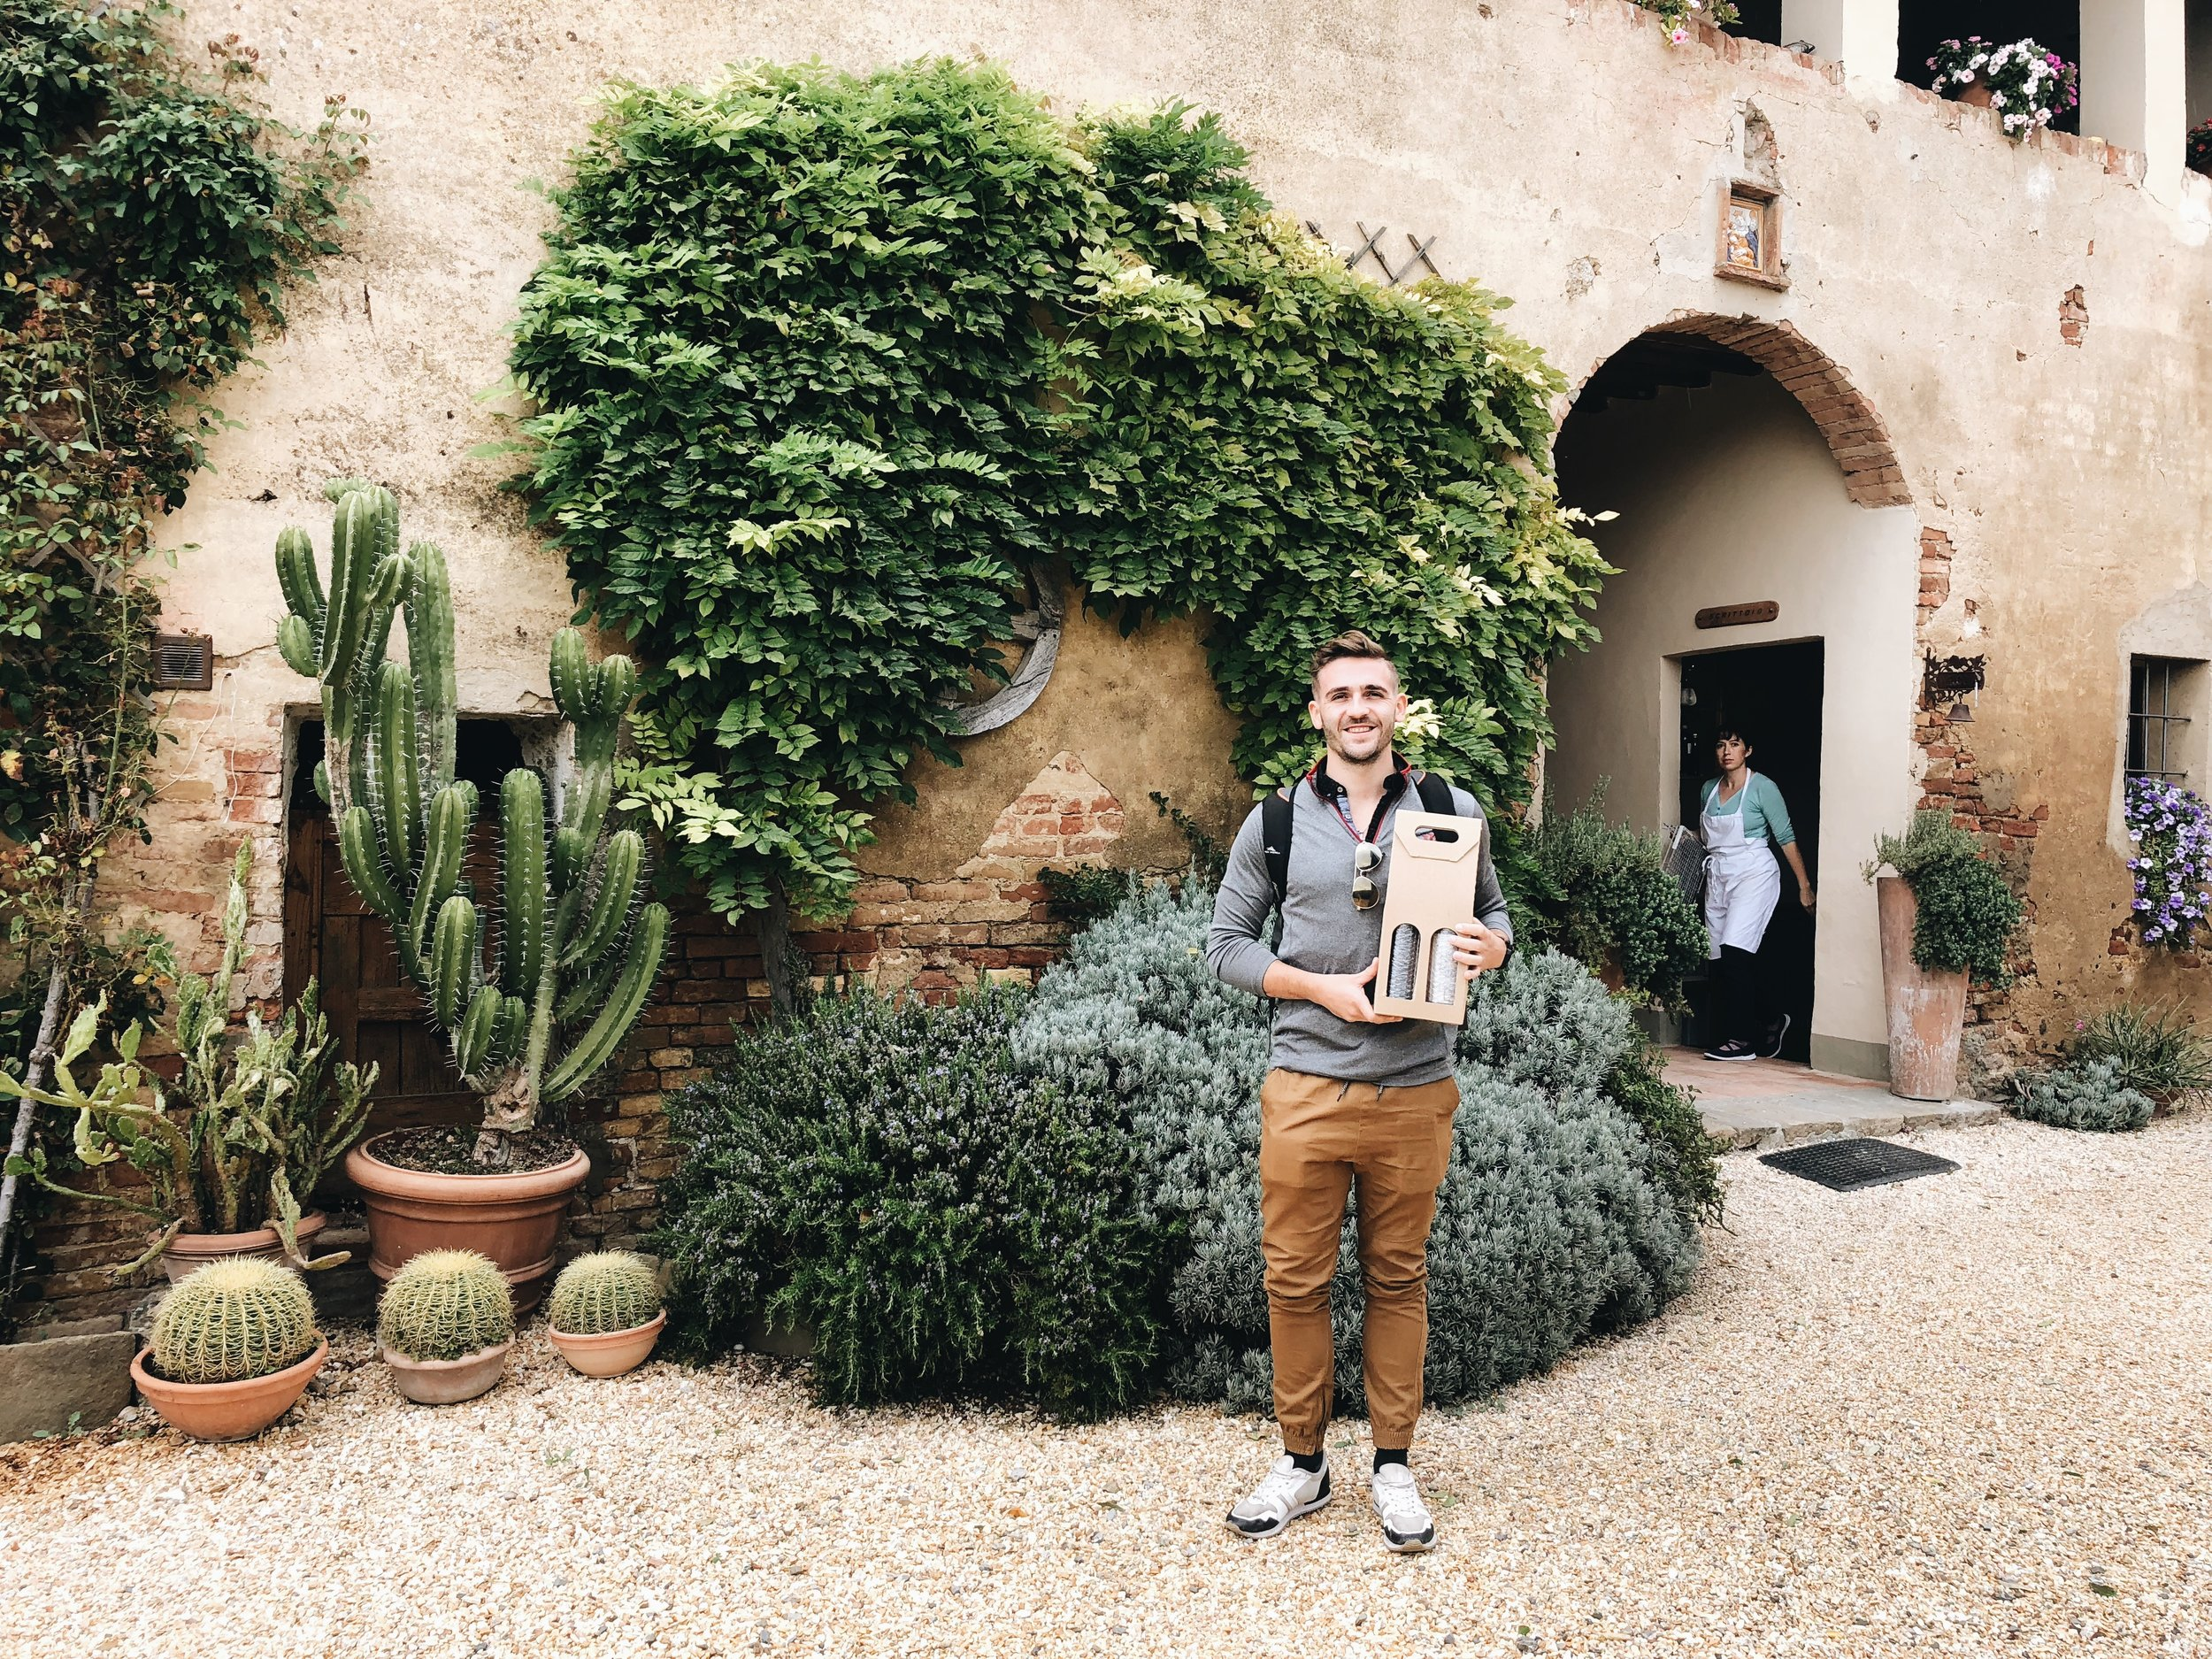 La Lastra Winery Tour Sienna Italy | What to do in Italy | Italy Wine Tour | Wine Country | Tuscany Wine Tasting | Organic Winery | Thoughtfully Thrifted Travel Blog